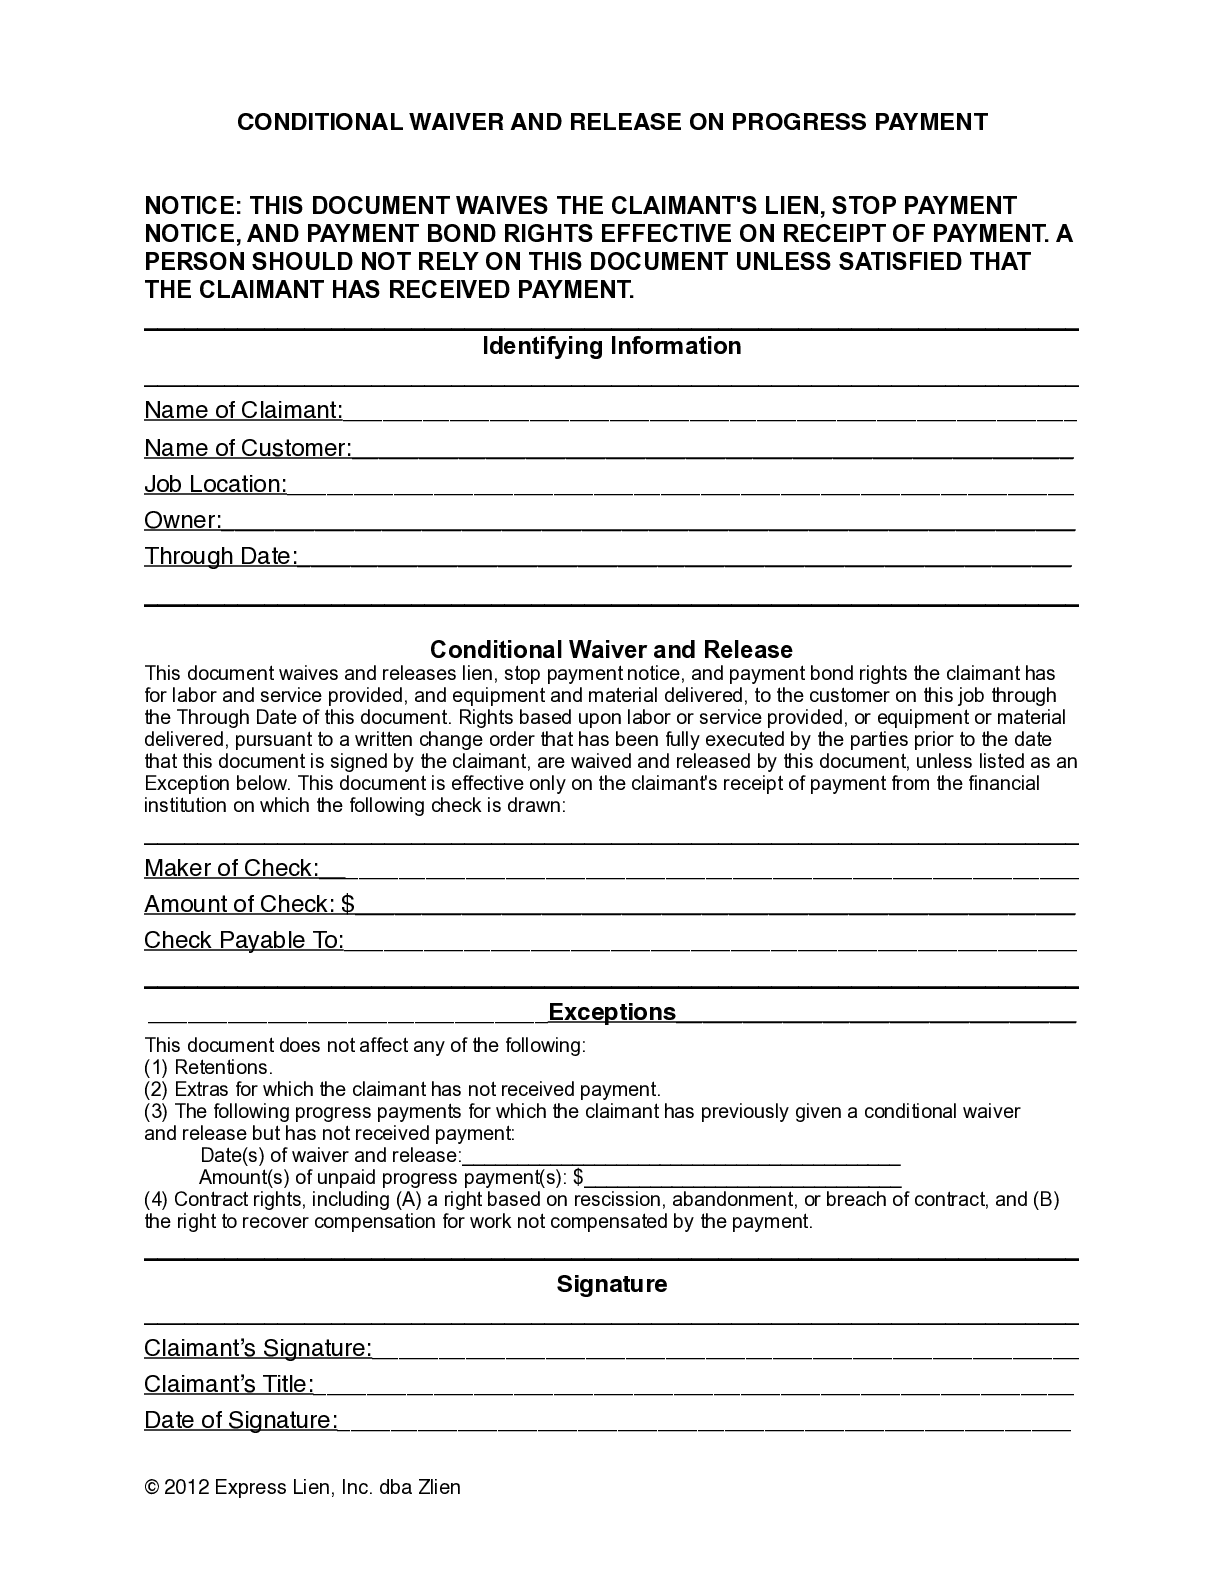 Pennsylvania Partial Conditional Lien Waiver Form